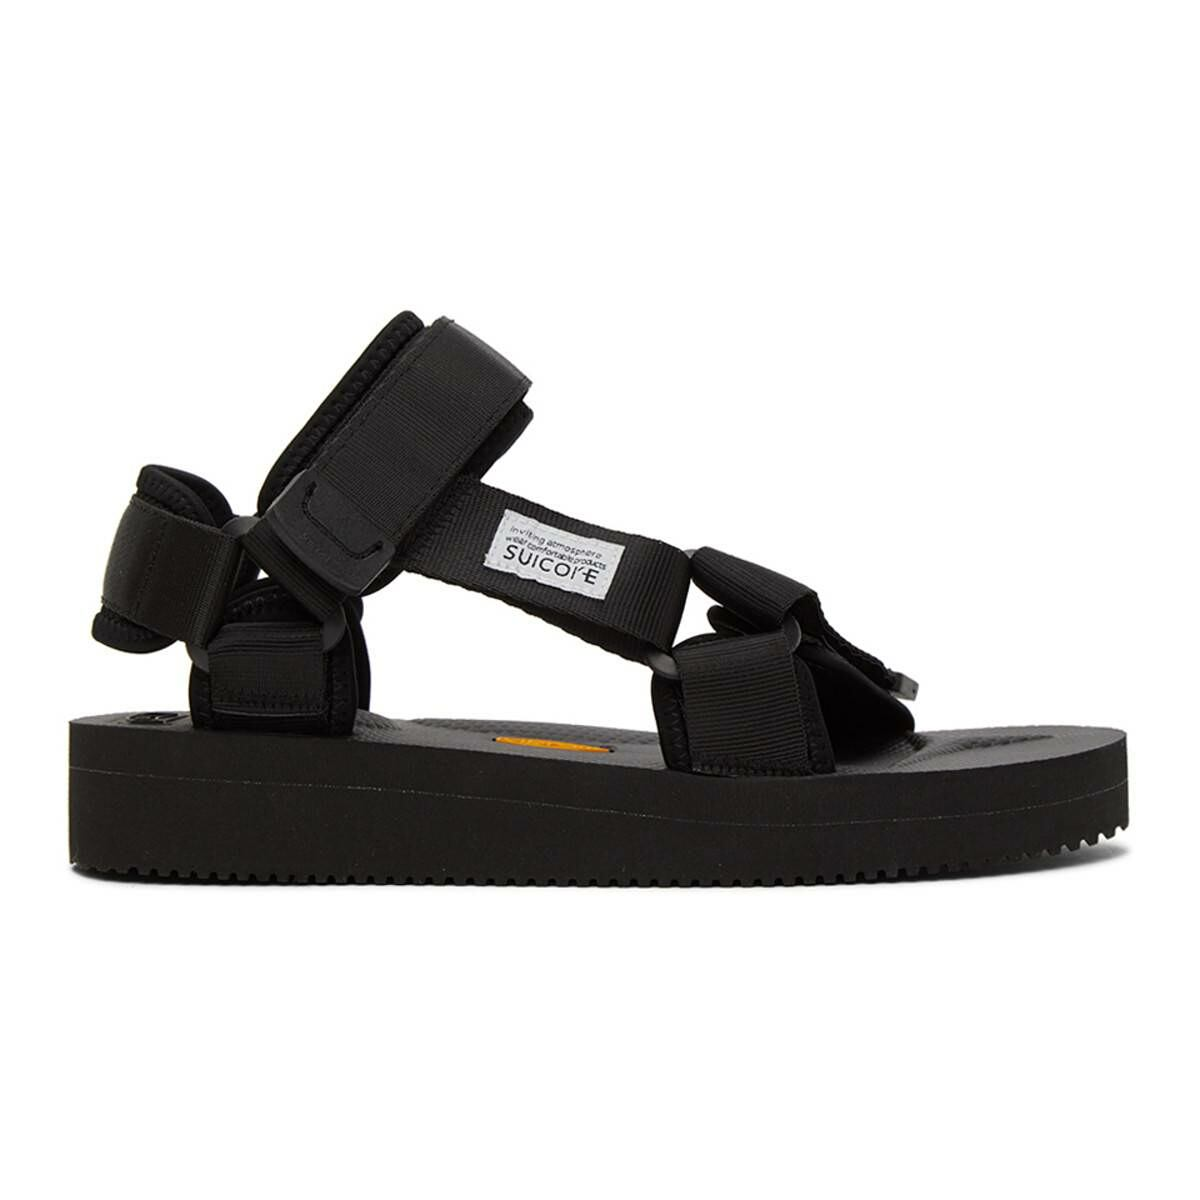 Suicoke Black DEPA V2 Sandals Ssense USA MEN Men SHOES Mens SANDALS